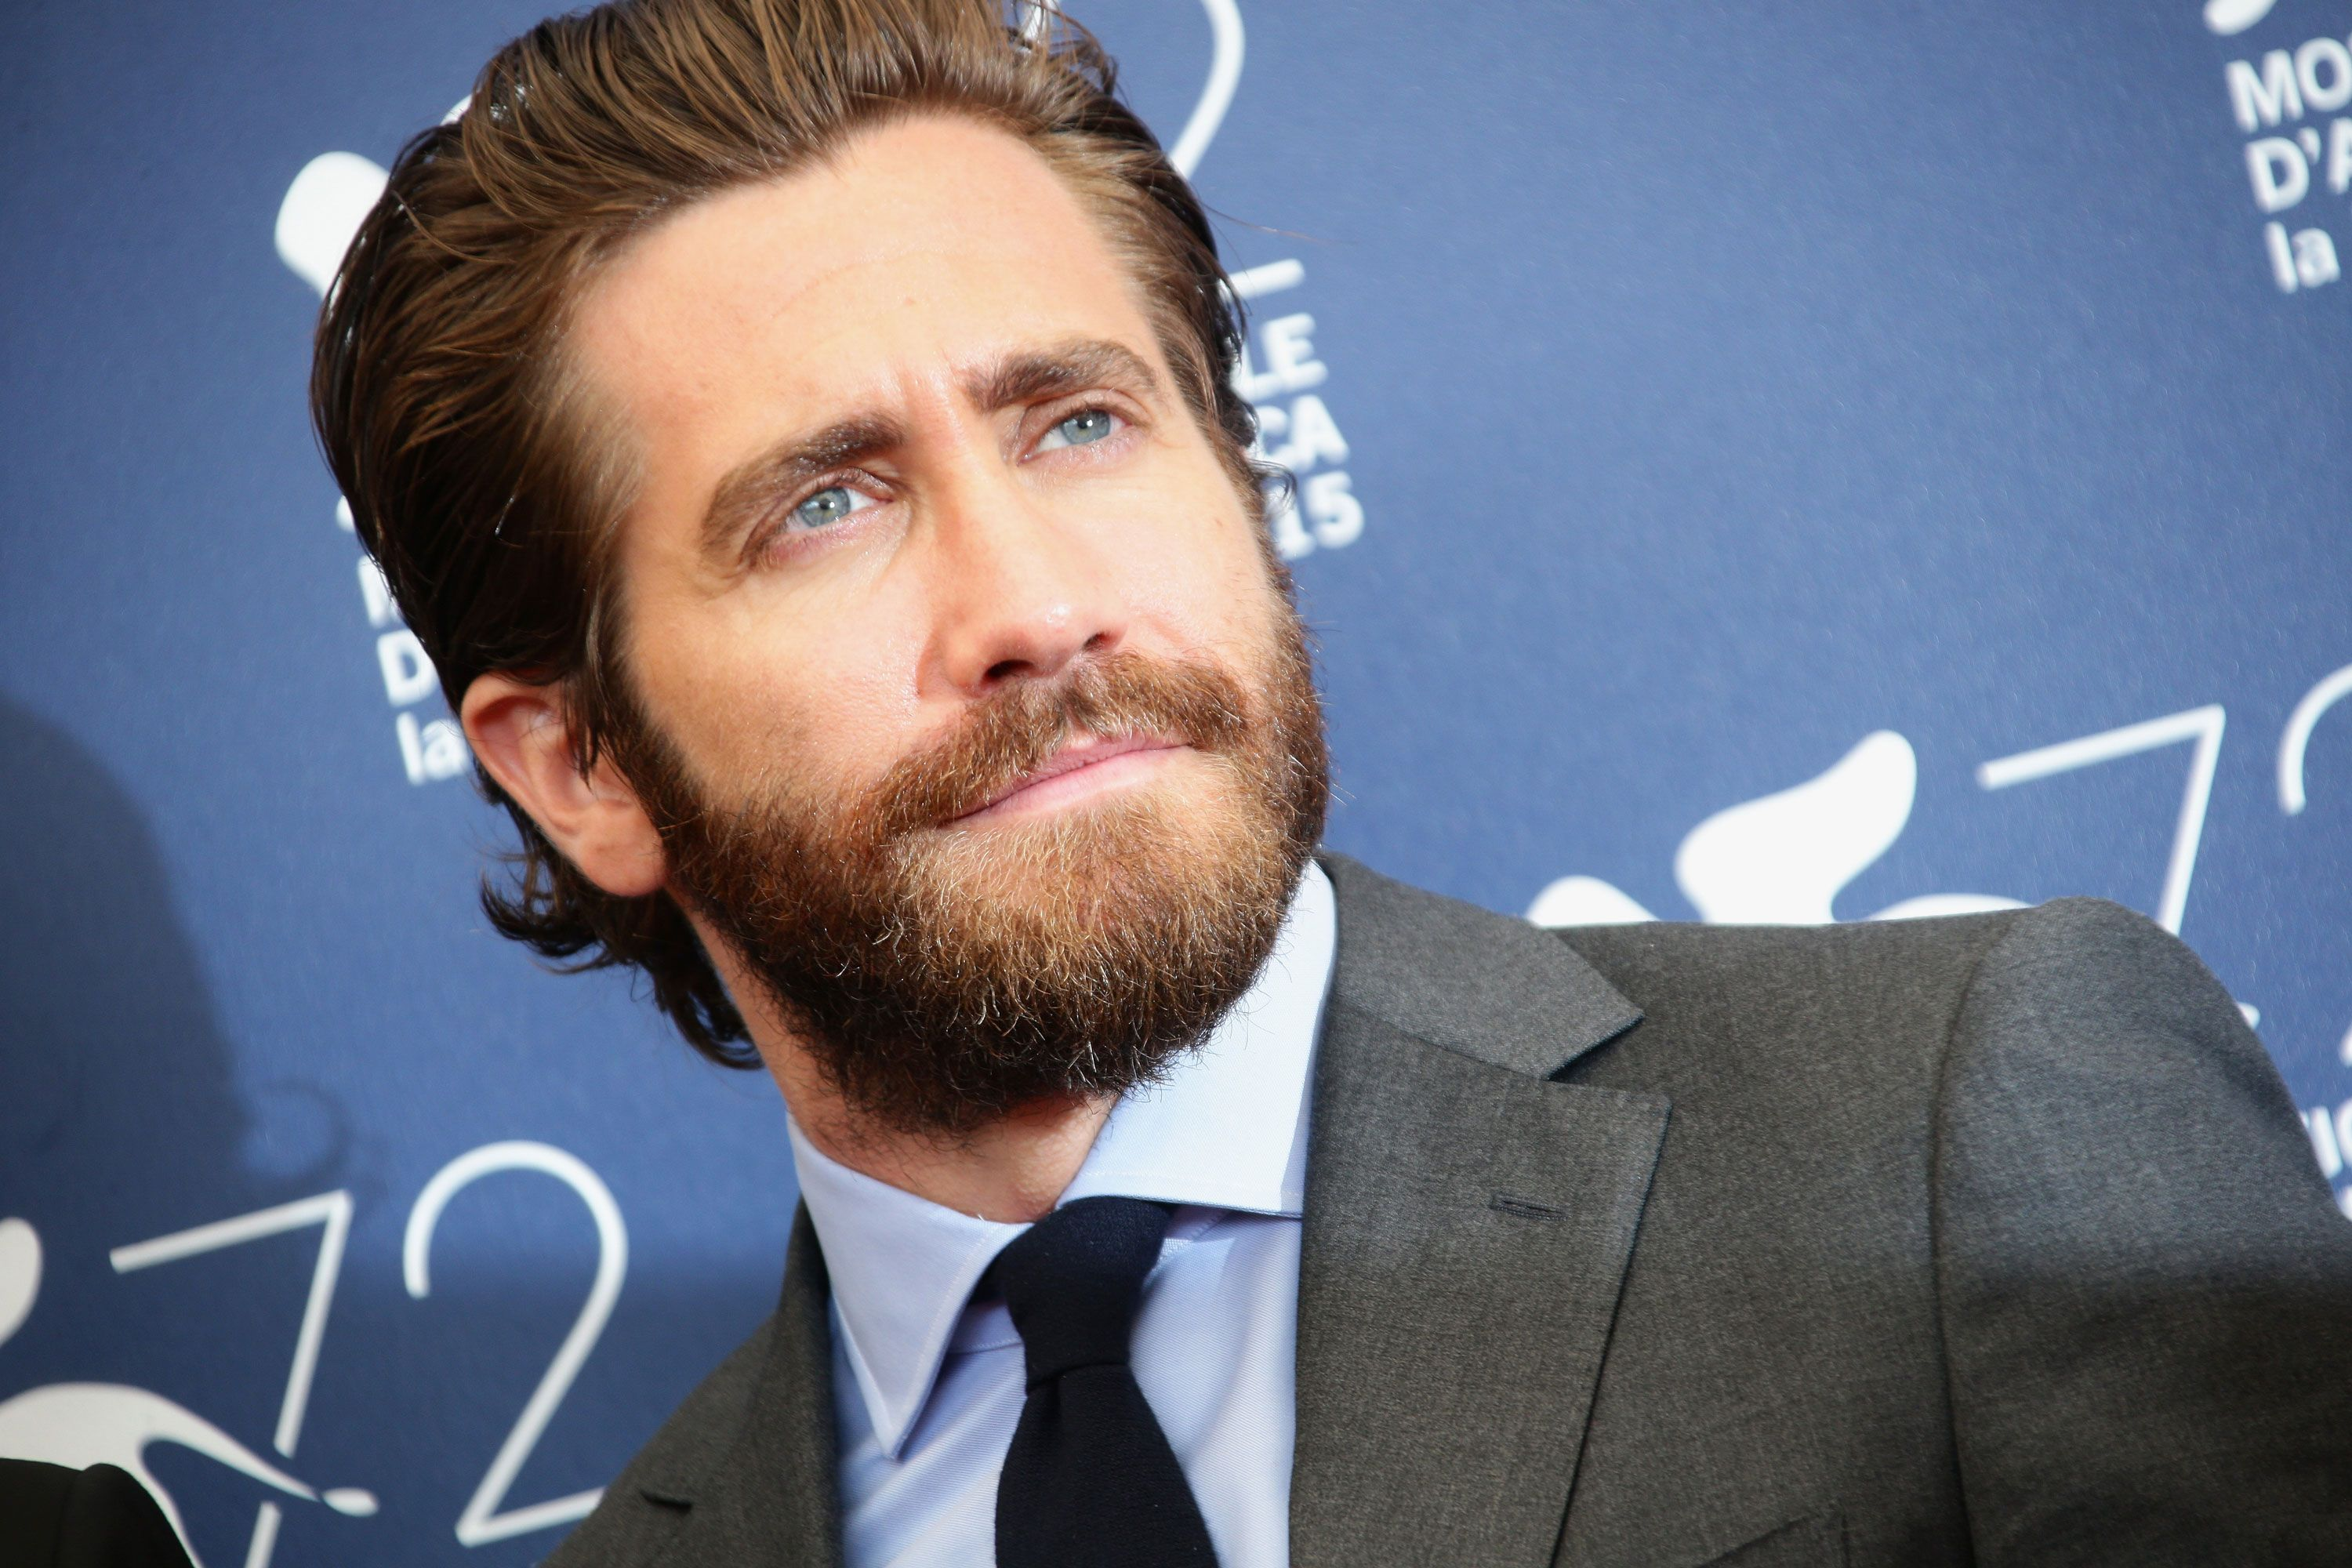 Spider-Man: Far From Home's Jake Gyllenhaal finally confirms he's